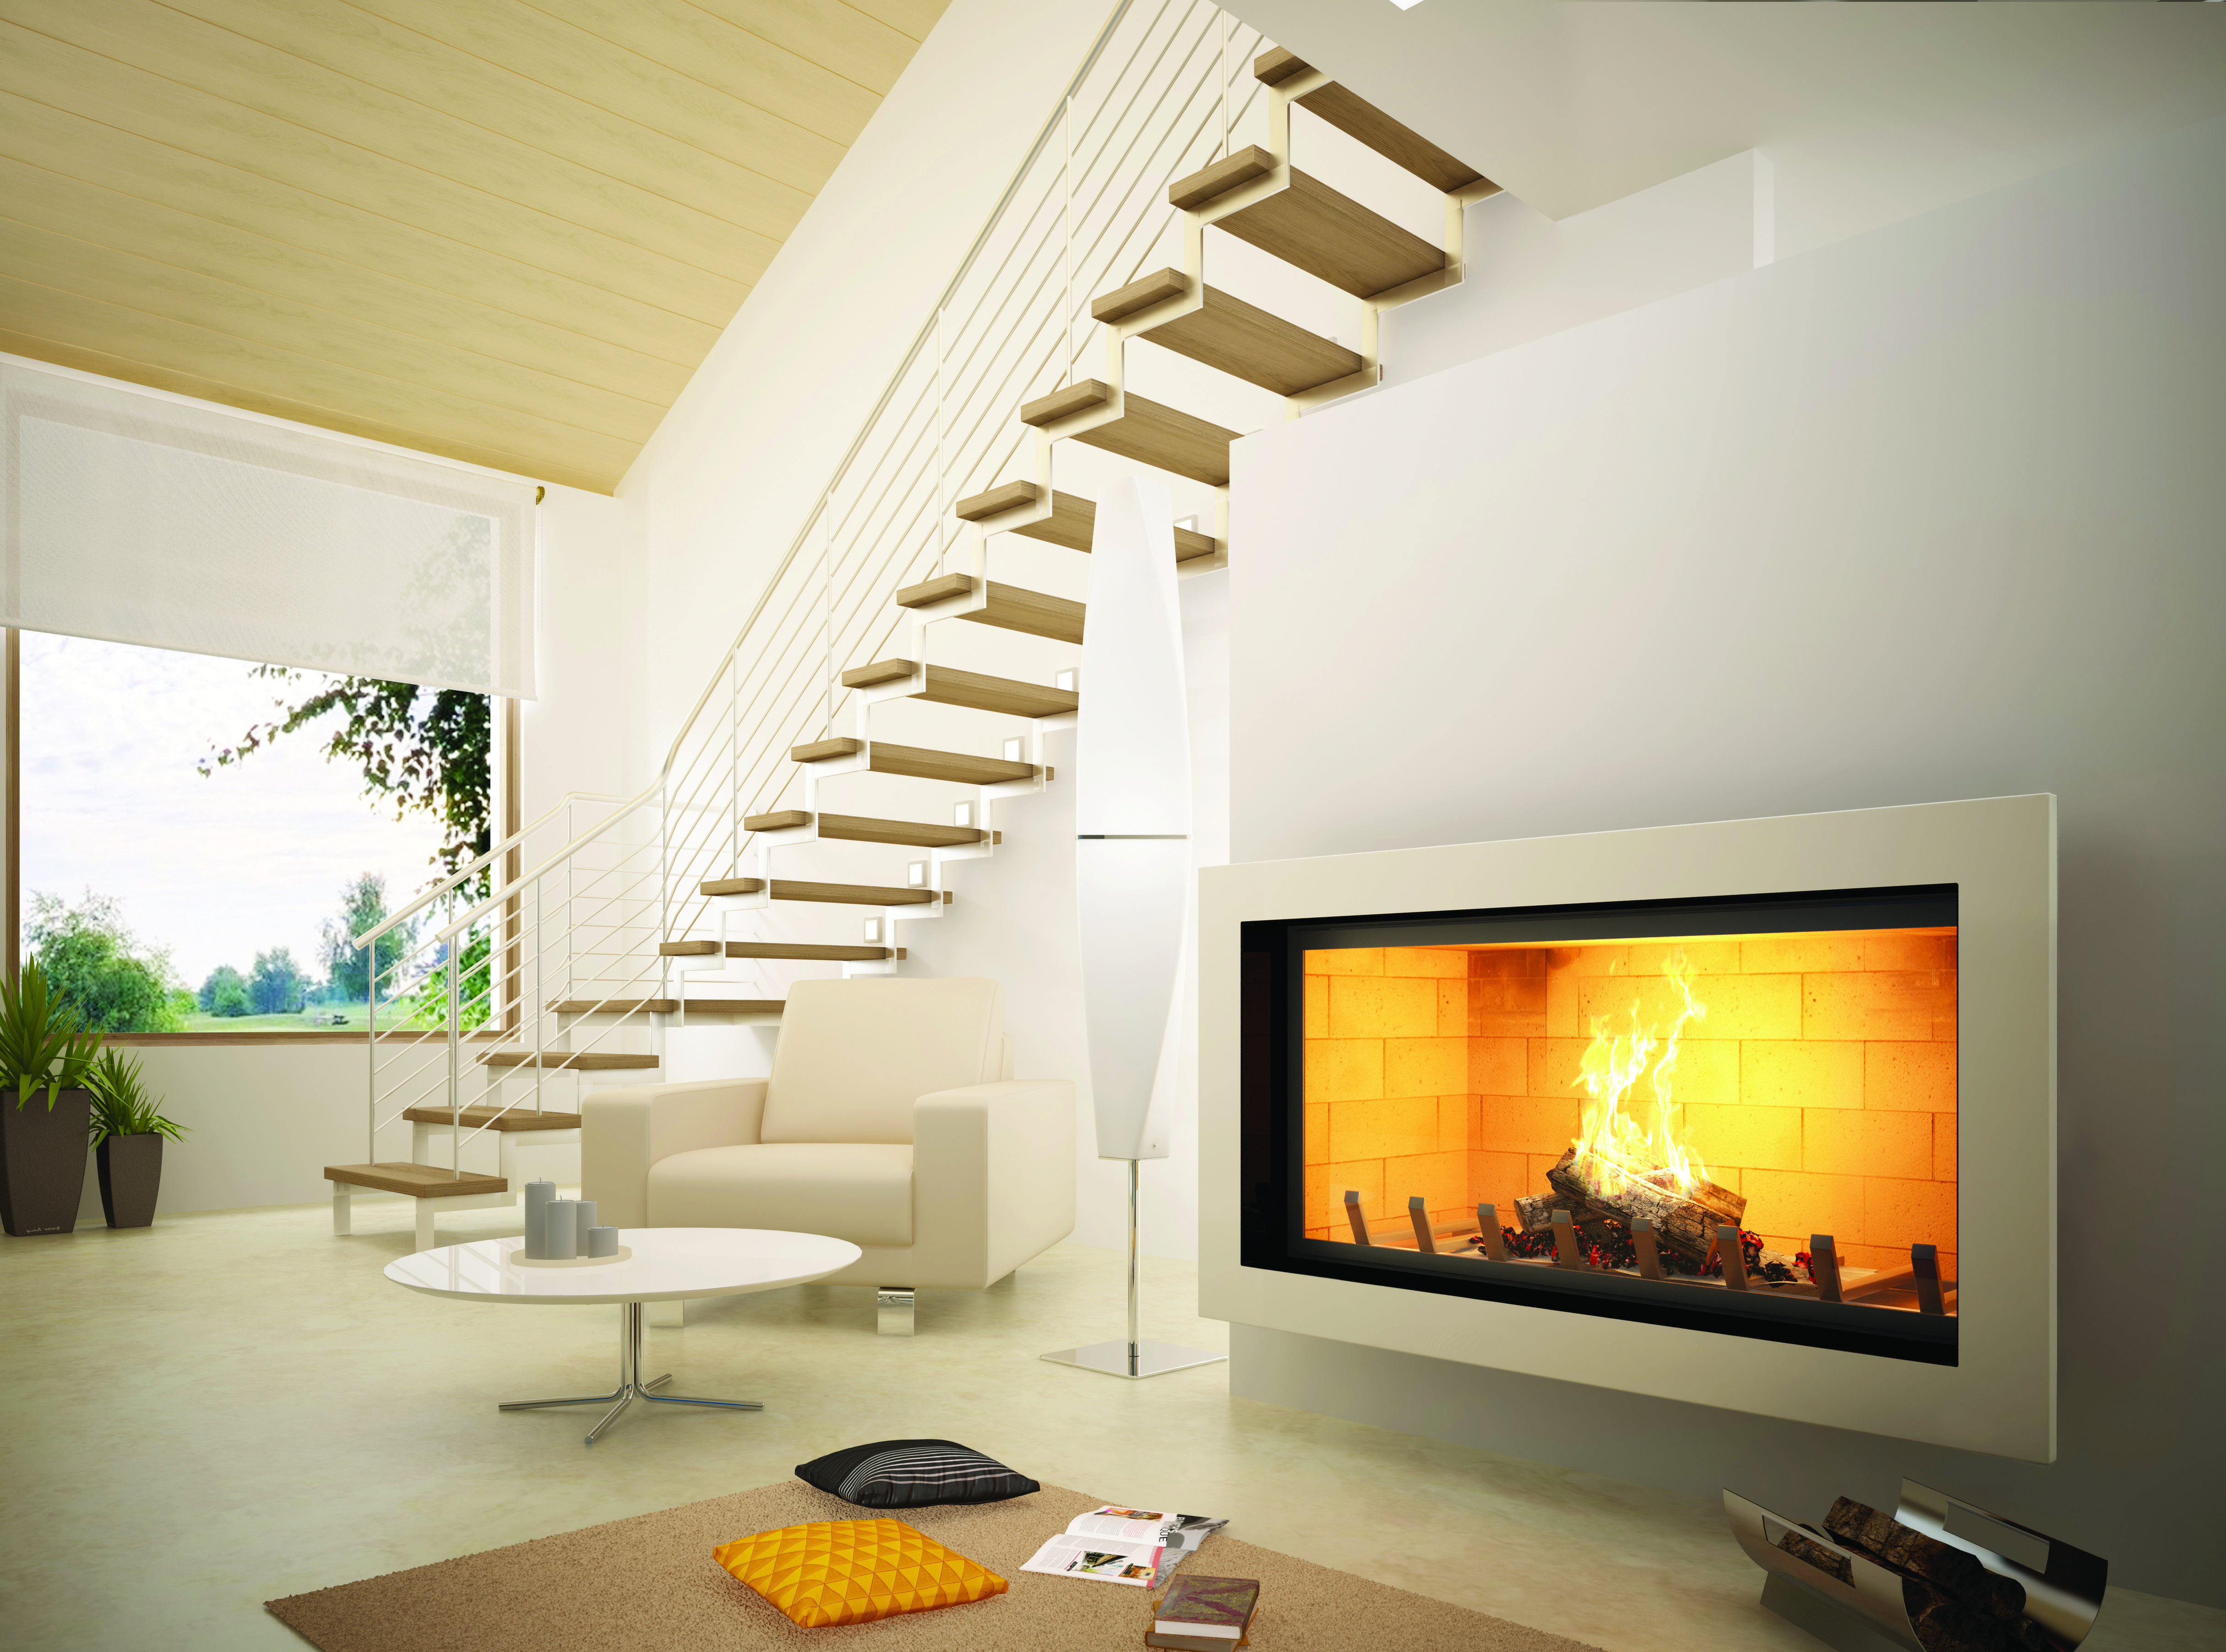 axis h1200 contemporary inbuilt fireplace the artisan engineered